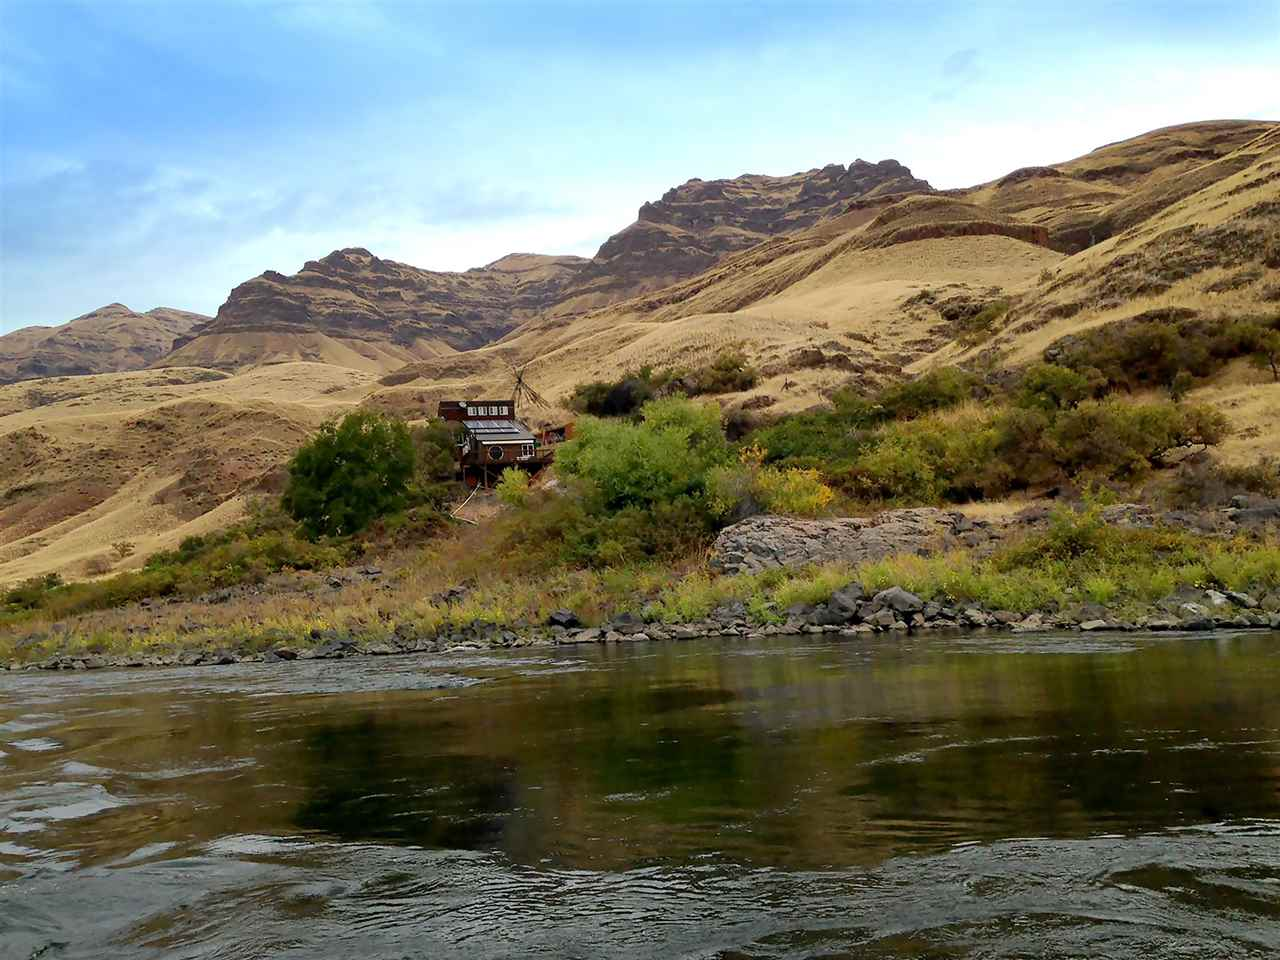 Single Family Home for Sale at Warm Springs Landing Snake River Route Warm Springs Landing Snake River Route Lewiston, Idaho 83501